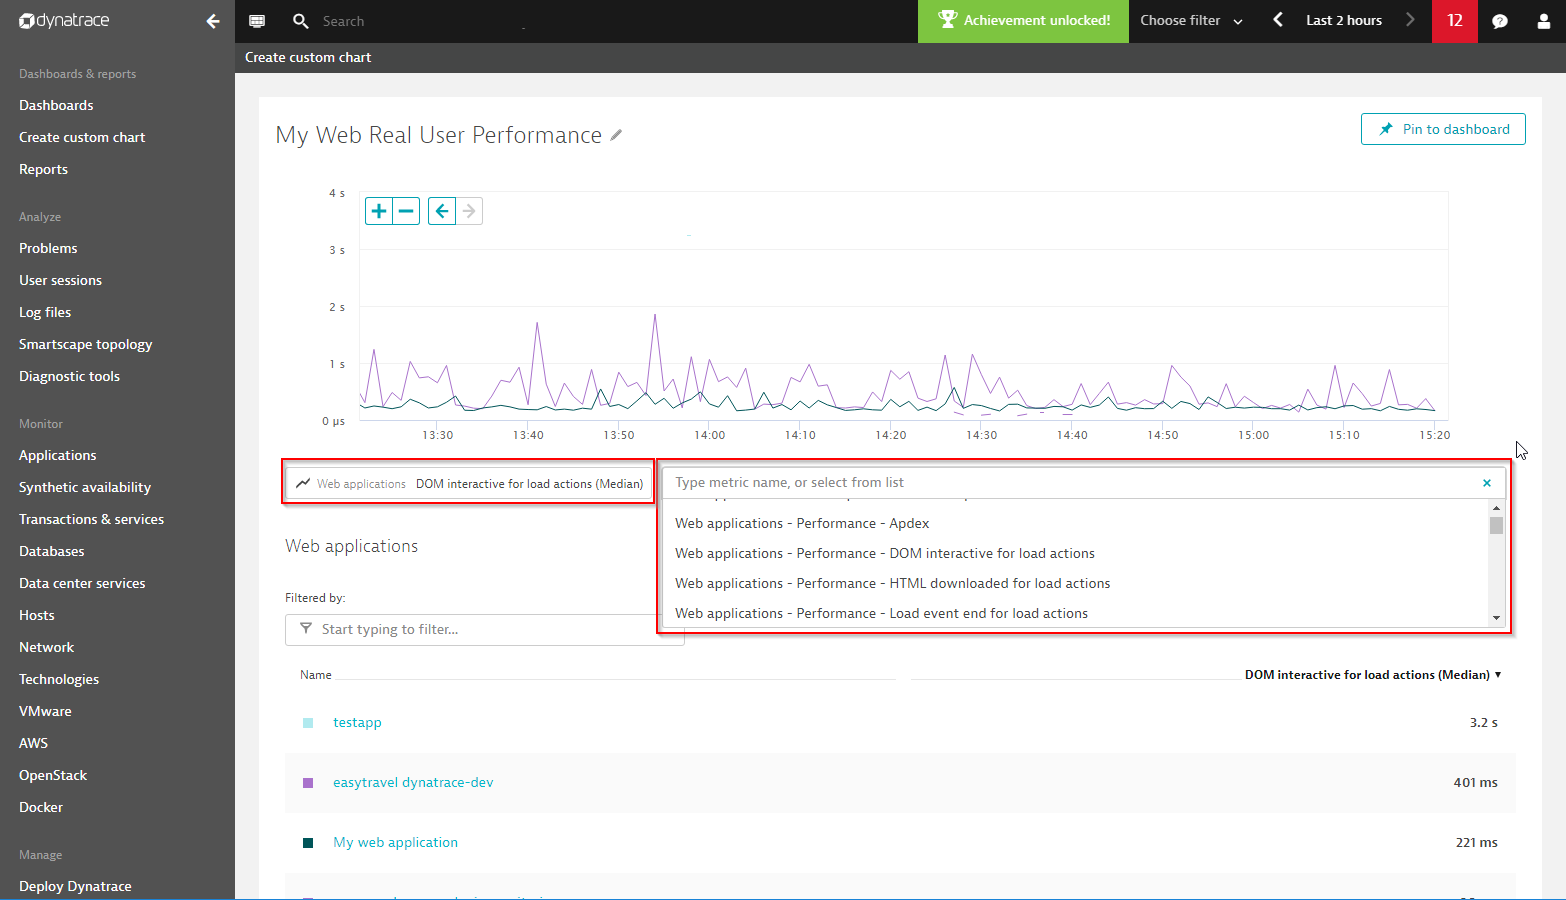 More real user monitoring metrics now available in Dynatrace